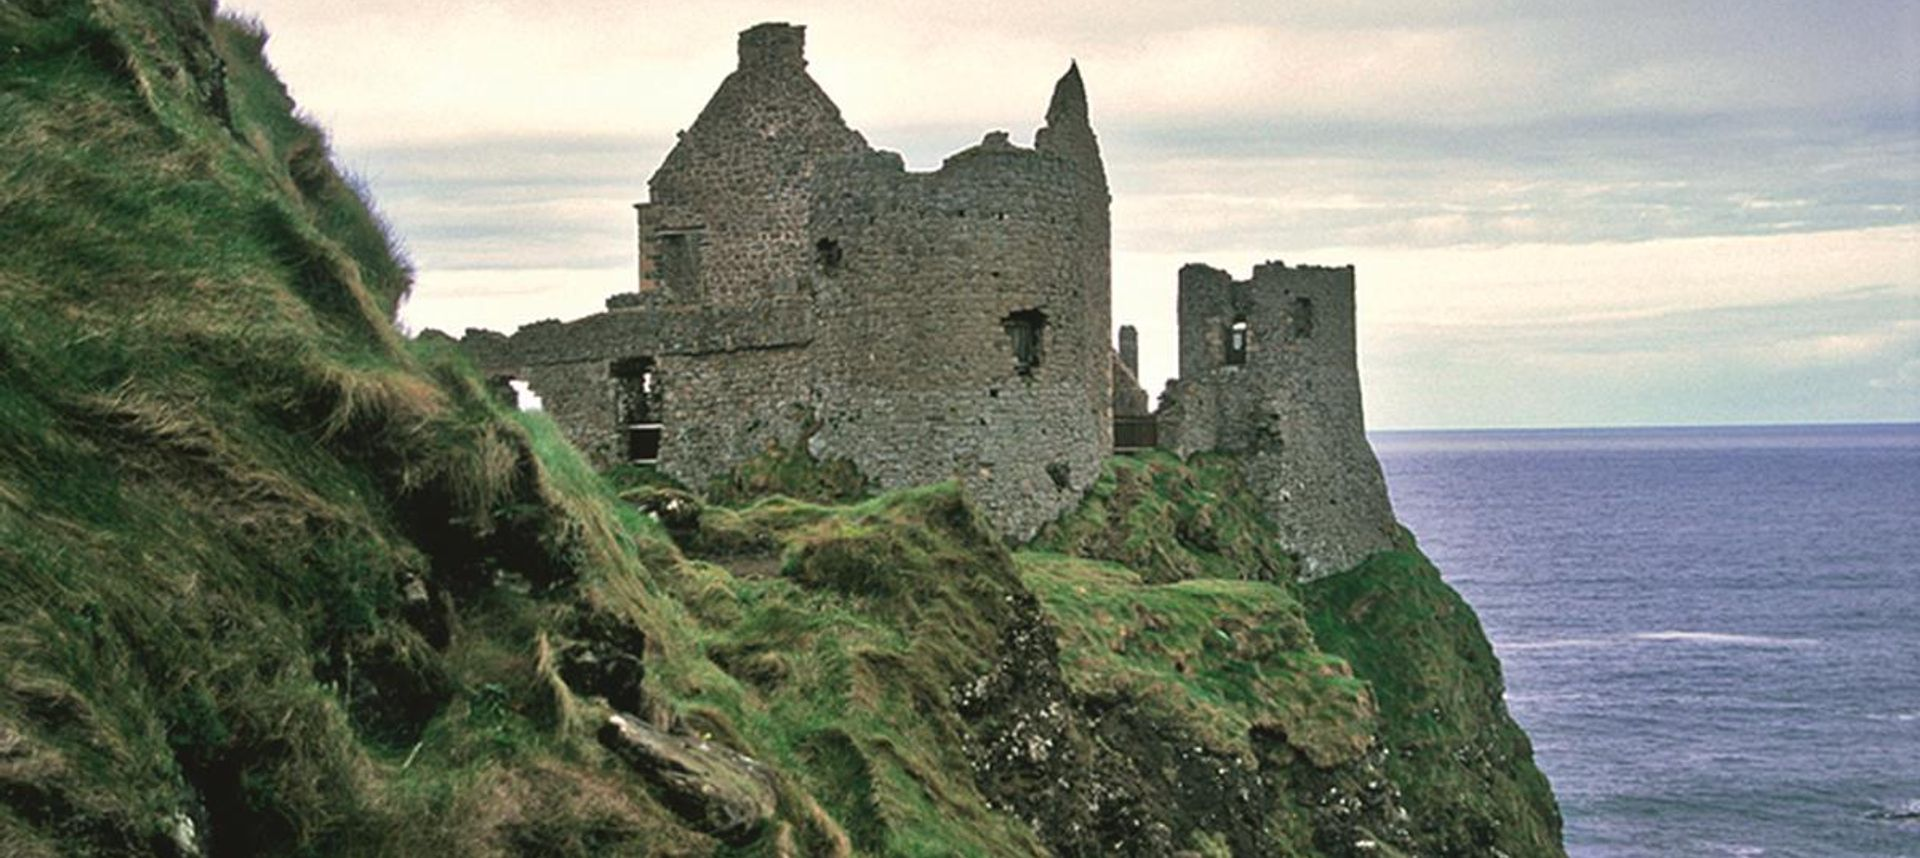 View of the Dunguaire Castle, Kinvara Bay, Galway, Ireland(dreamstime.com)